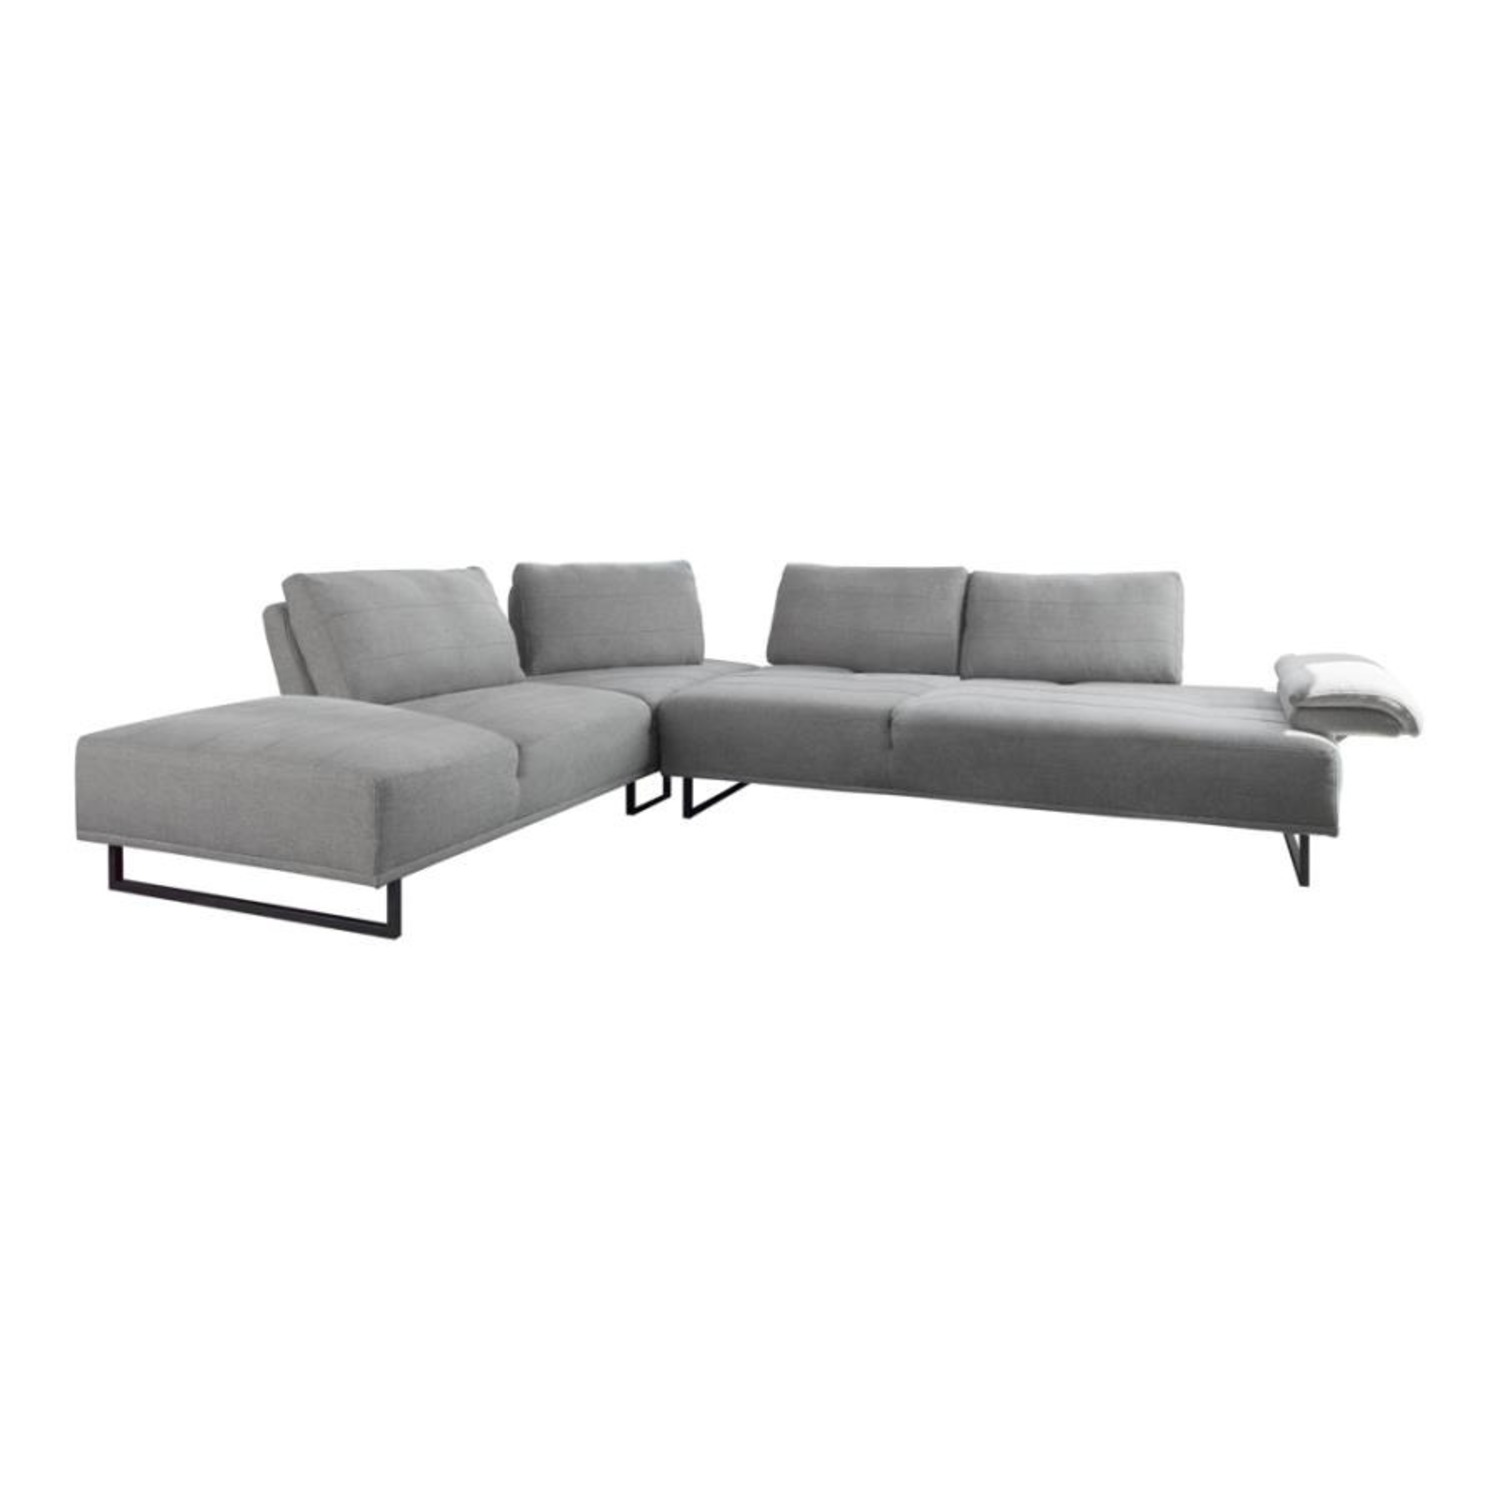 Sectional In Taupe Woven Fabric Upholstery - image-0